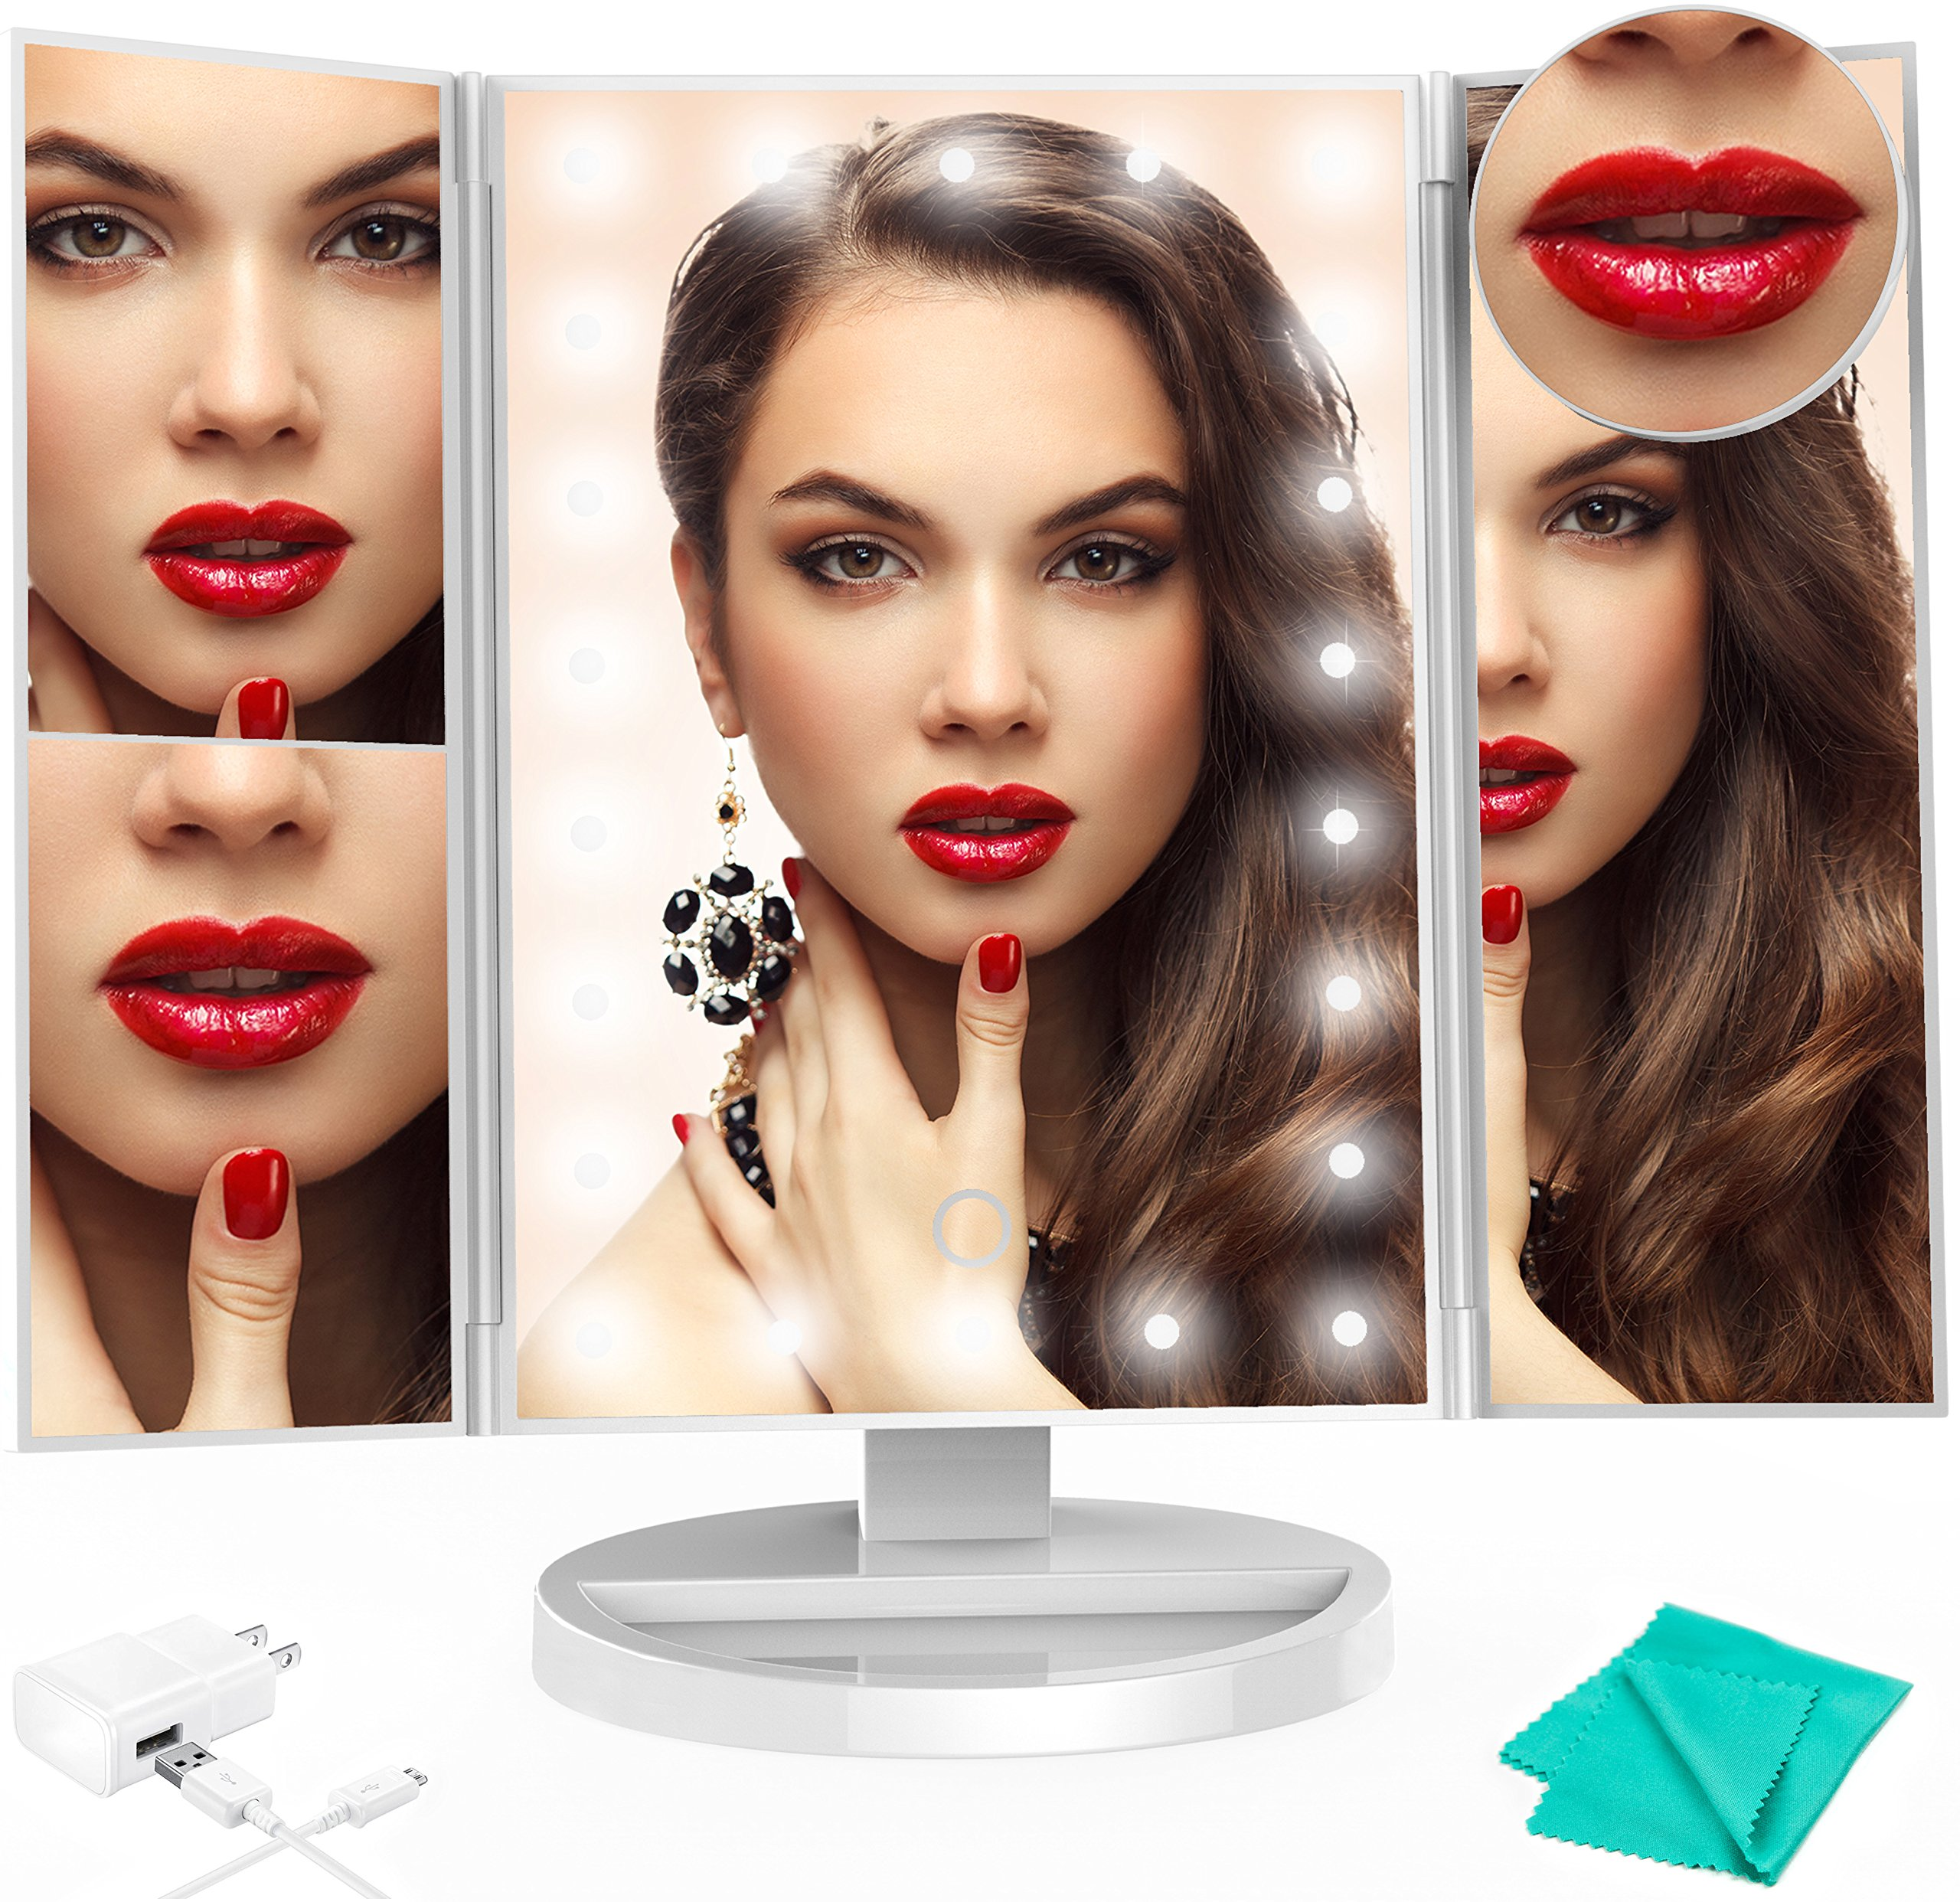 Premium Lighted Makeup Vanity Mirror Exclusive For Women Girls Men 22 LED Lights 2x/3x Magnifying Stand Trifold LED Mirror 10x Table Cosmetic Compact Portable Travel Best Mirror White Set Black Box